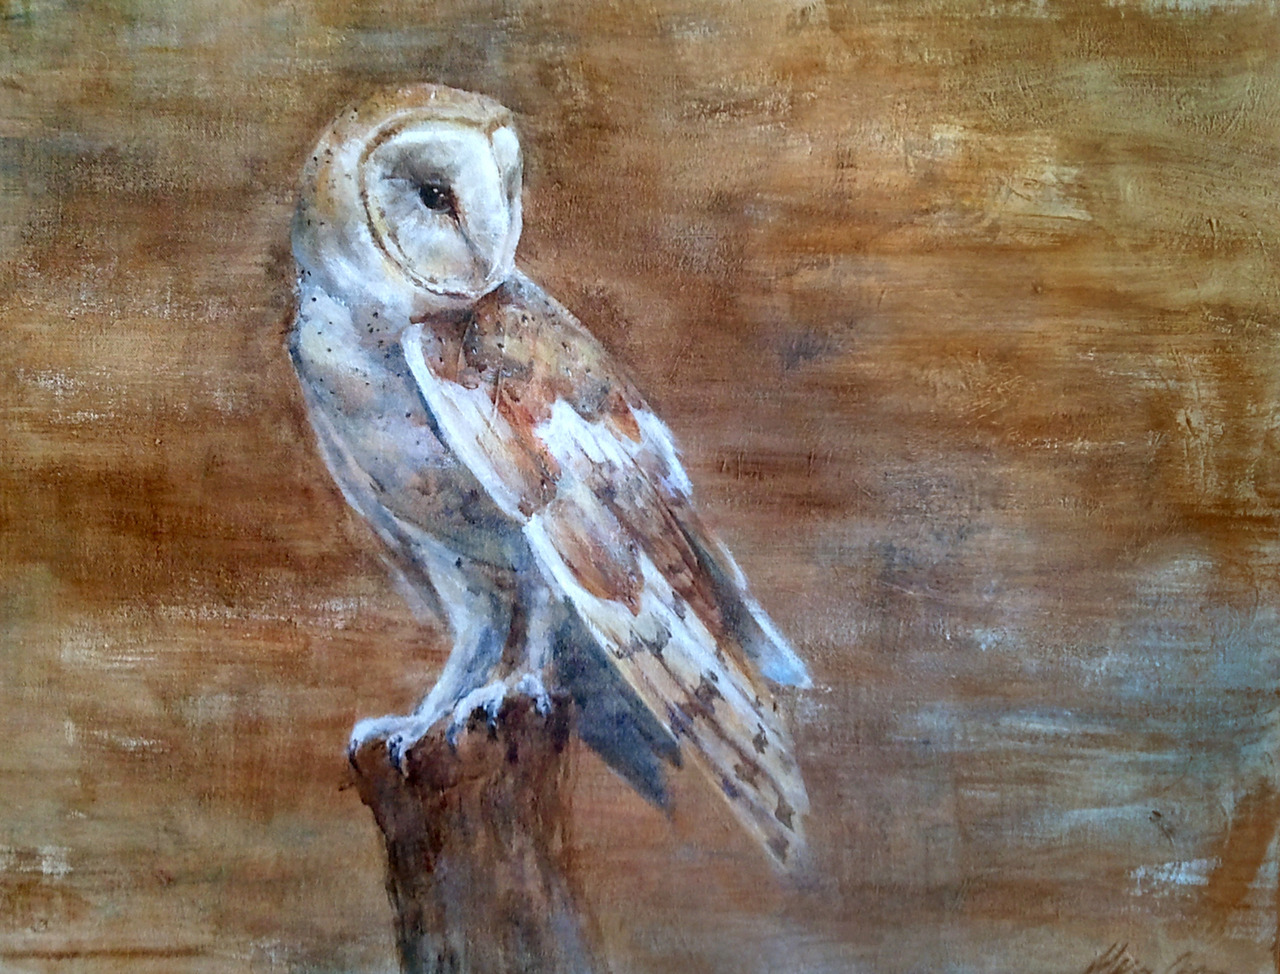 Barn owls are so beautiful, aren't they? Another painting for the art sale. 16x20 acrylic on canvas. Paint paint paint! So busy painting!